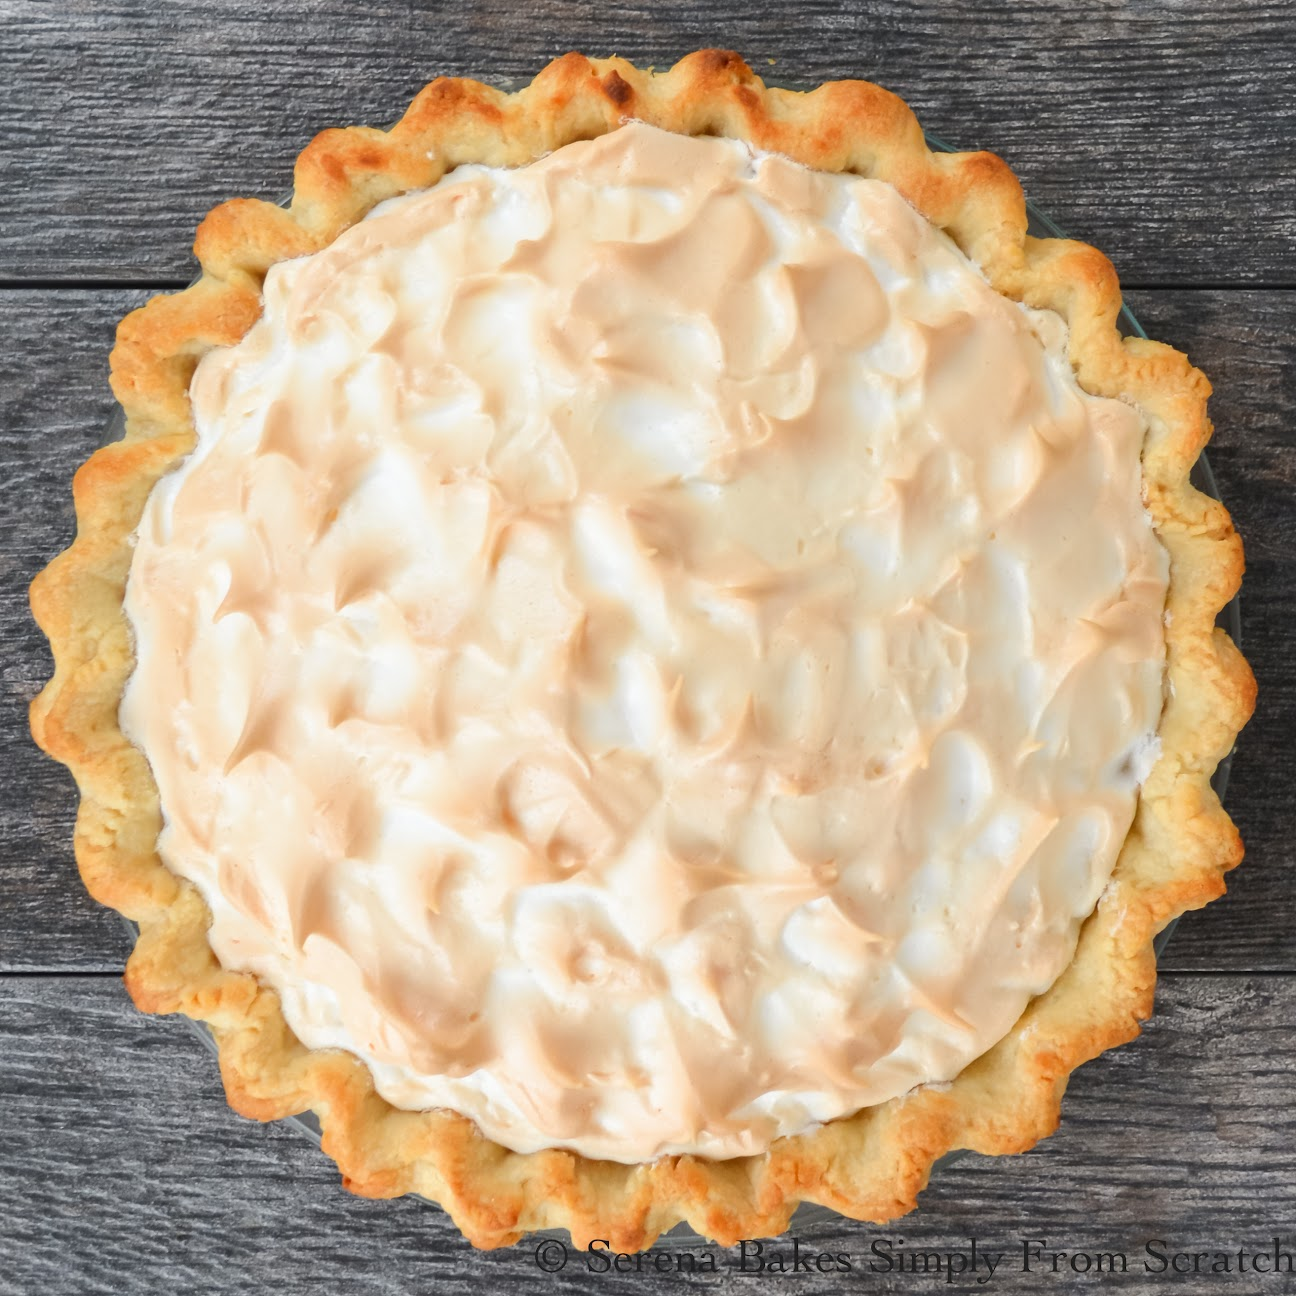 A weep free Lemon Meringue Pie for #SundaySupper.